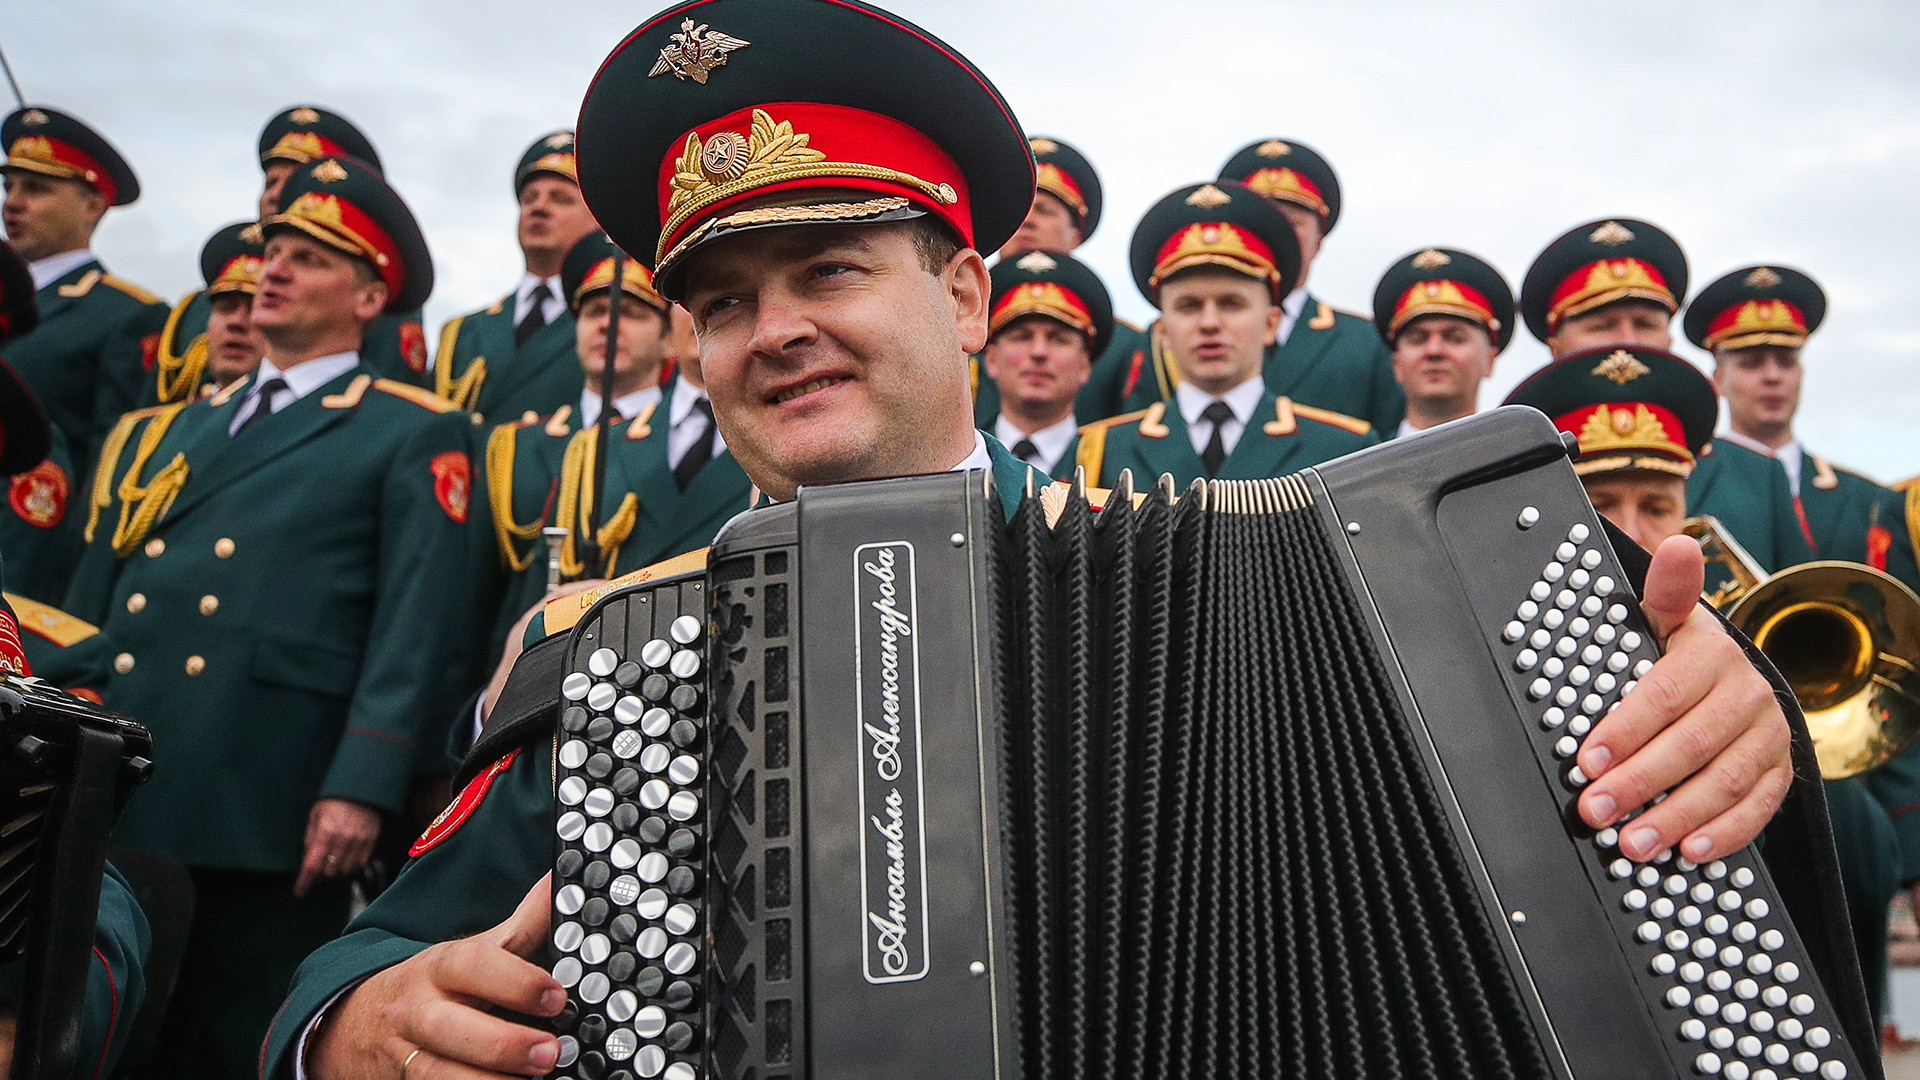 Alexandrov Ensemble.